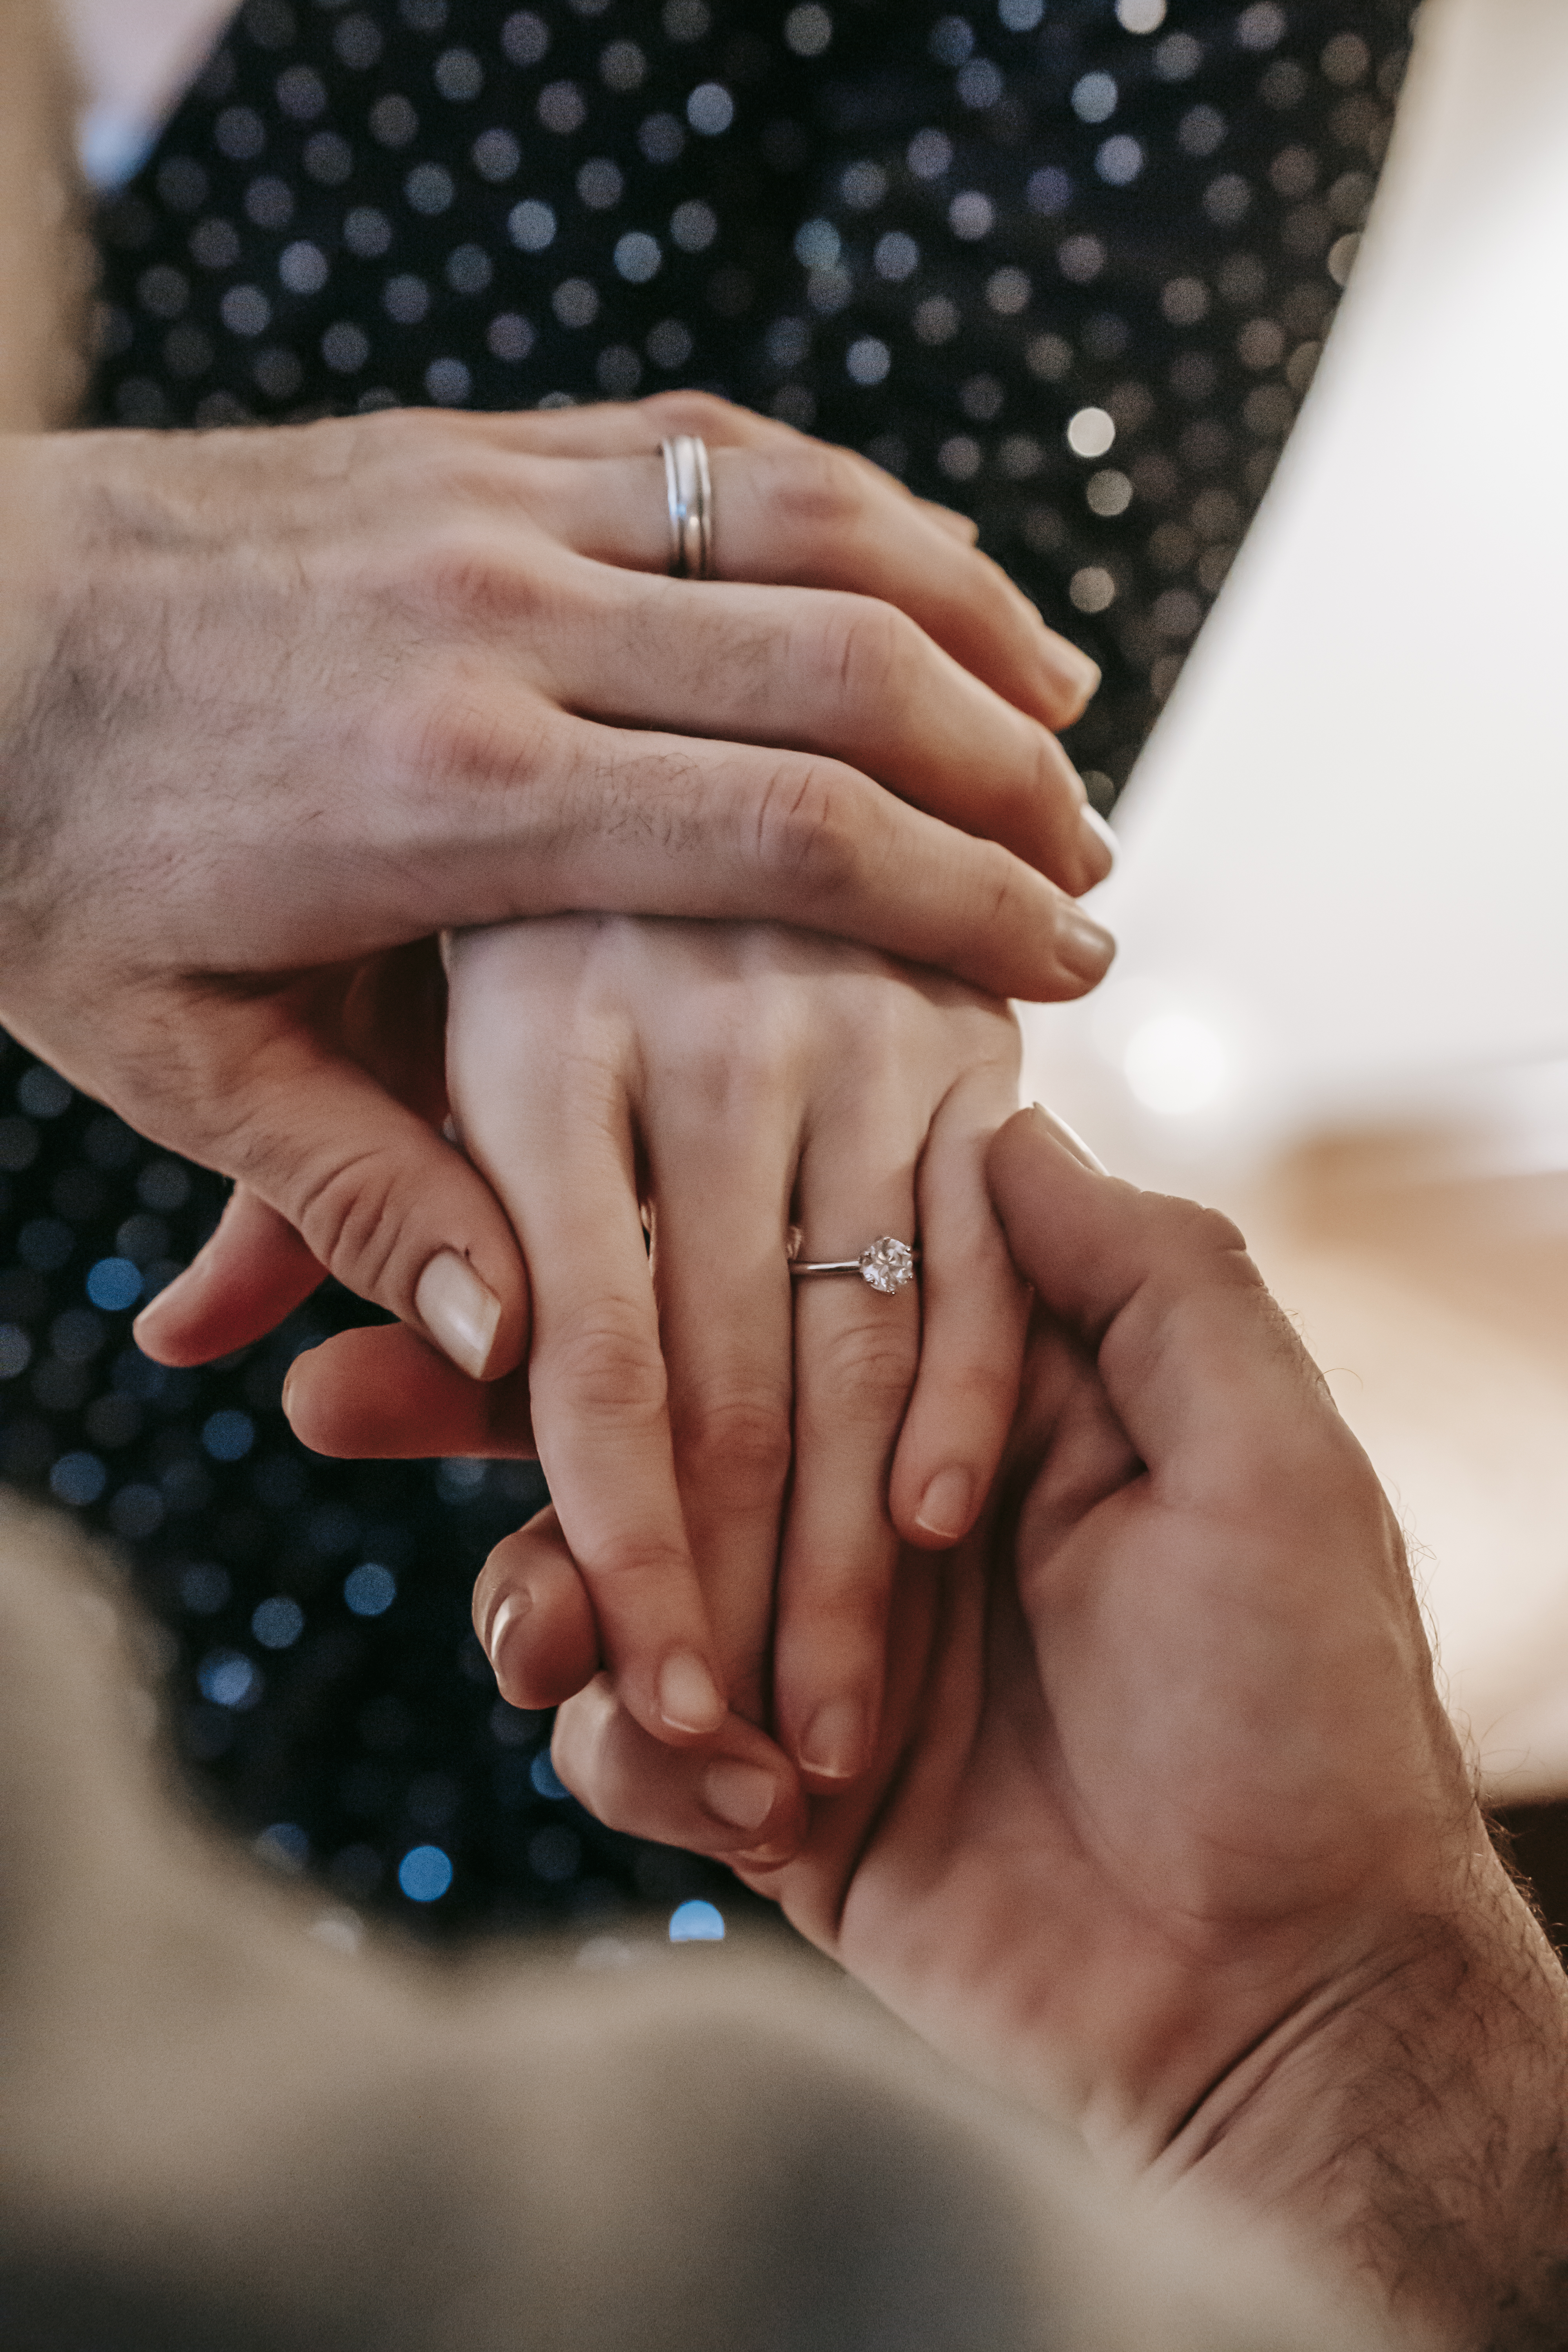 crop man and woman hands with engagement rings